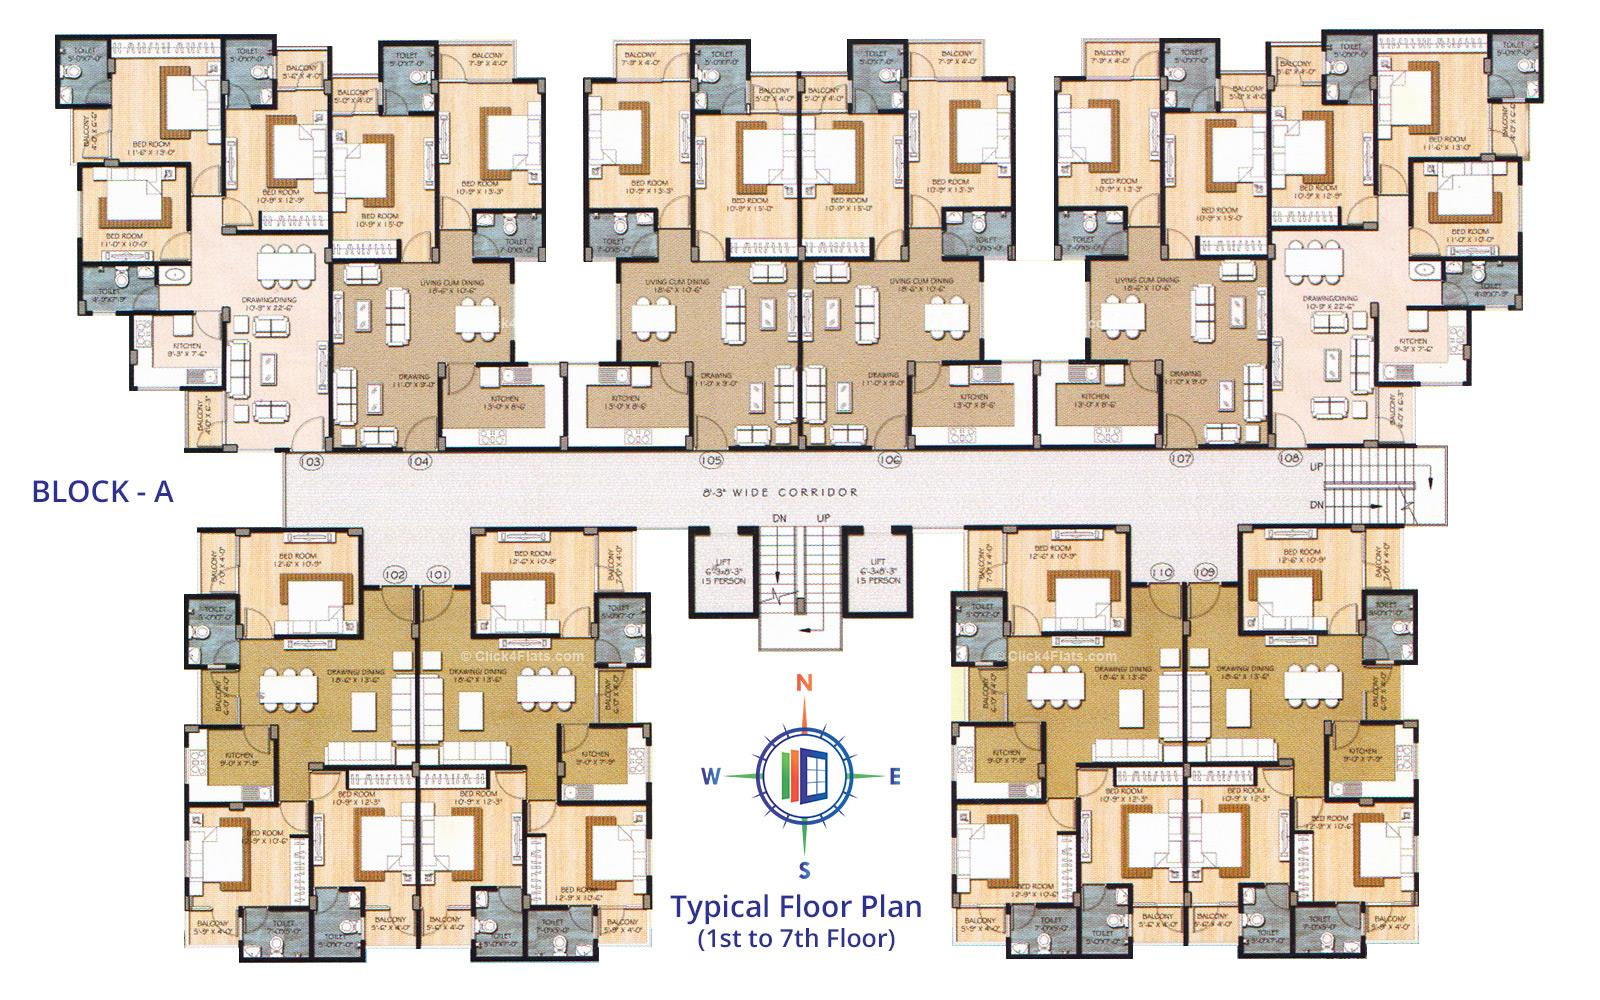 Star Heights Typical Floor Plan (Block A)